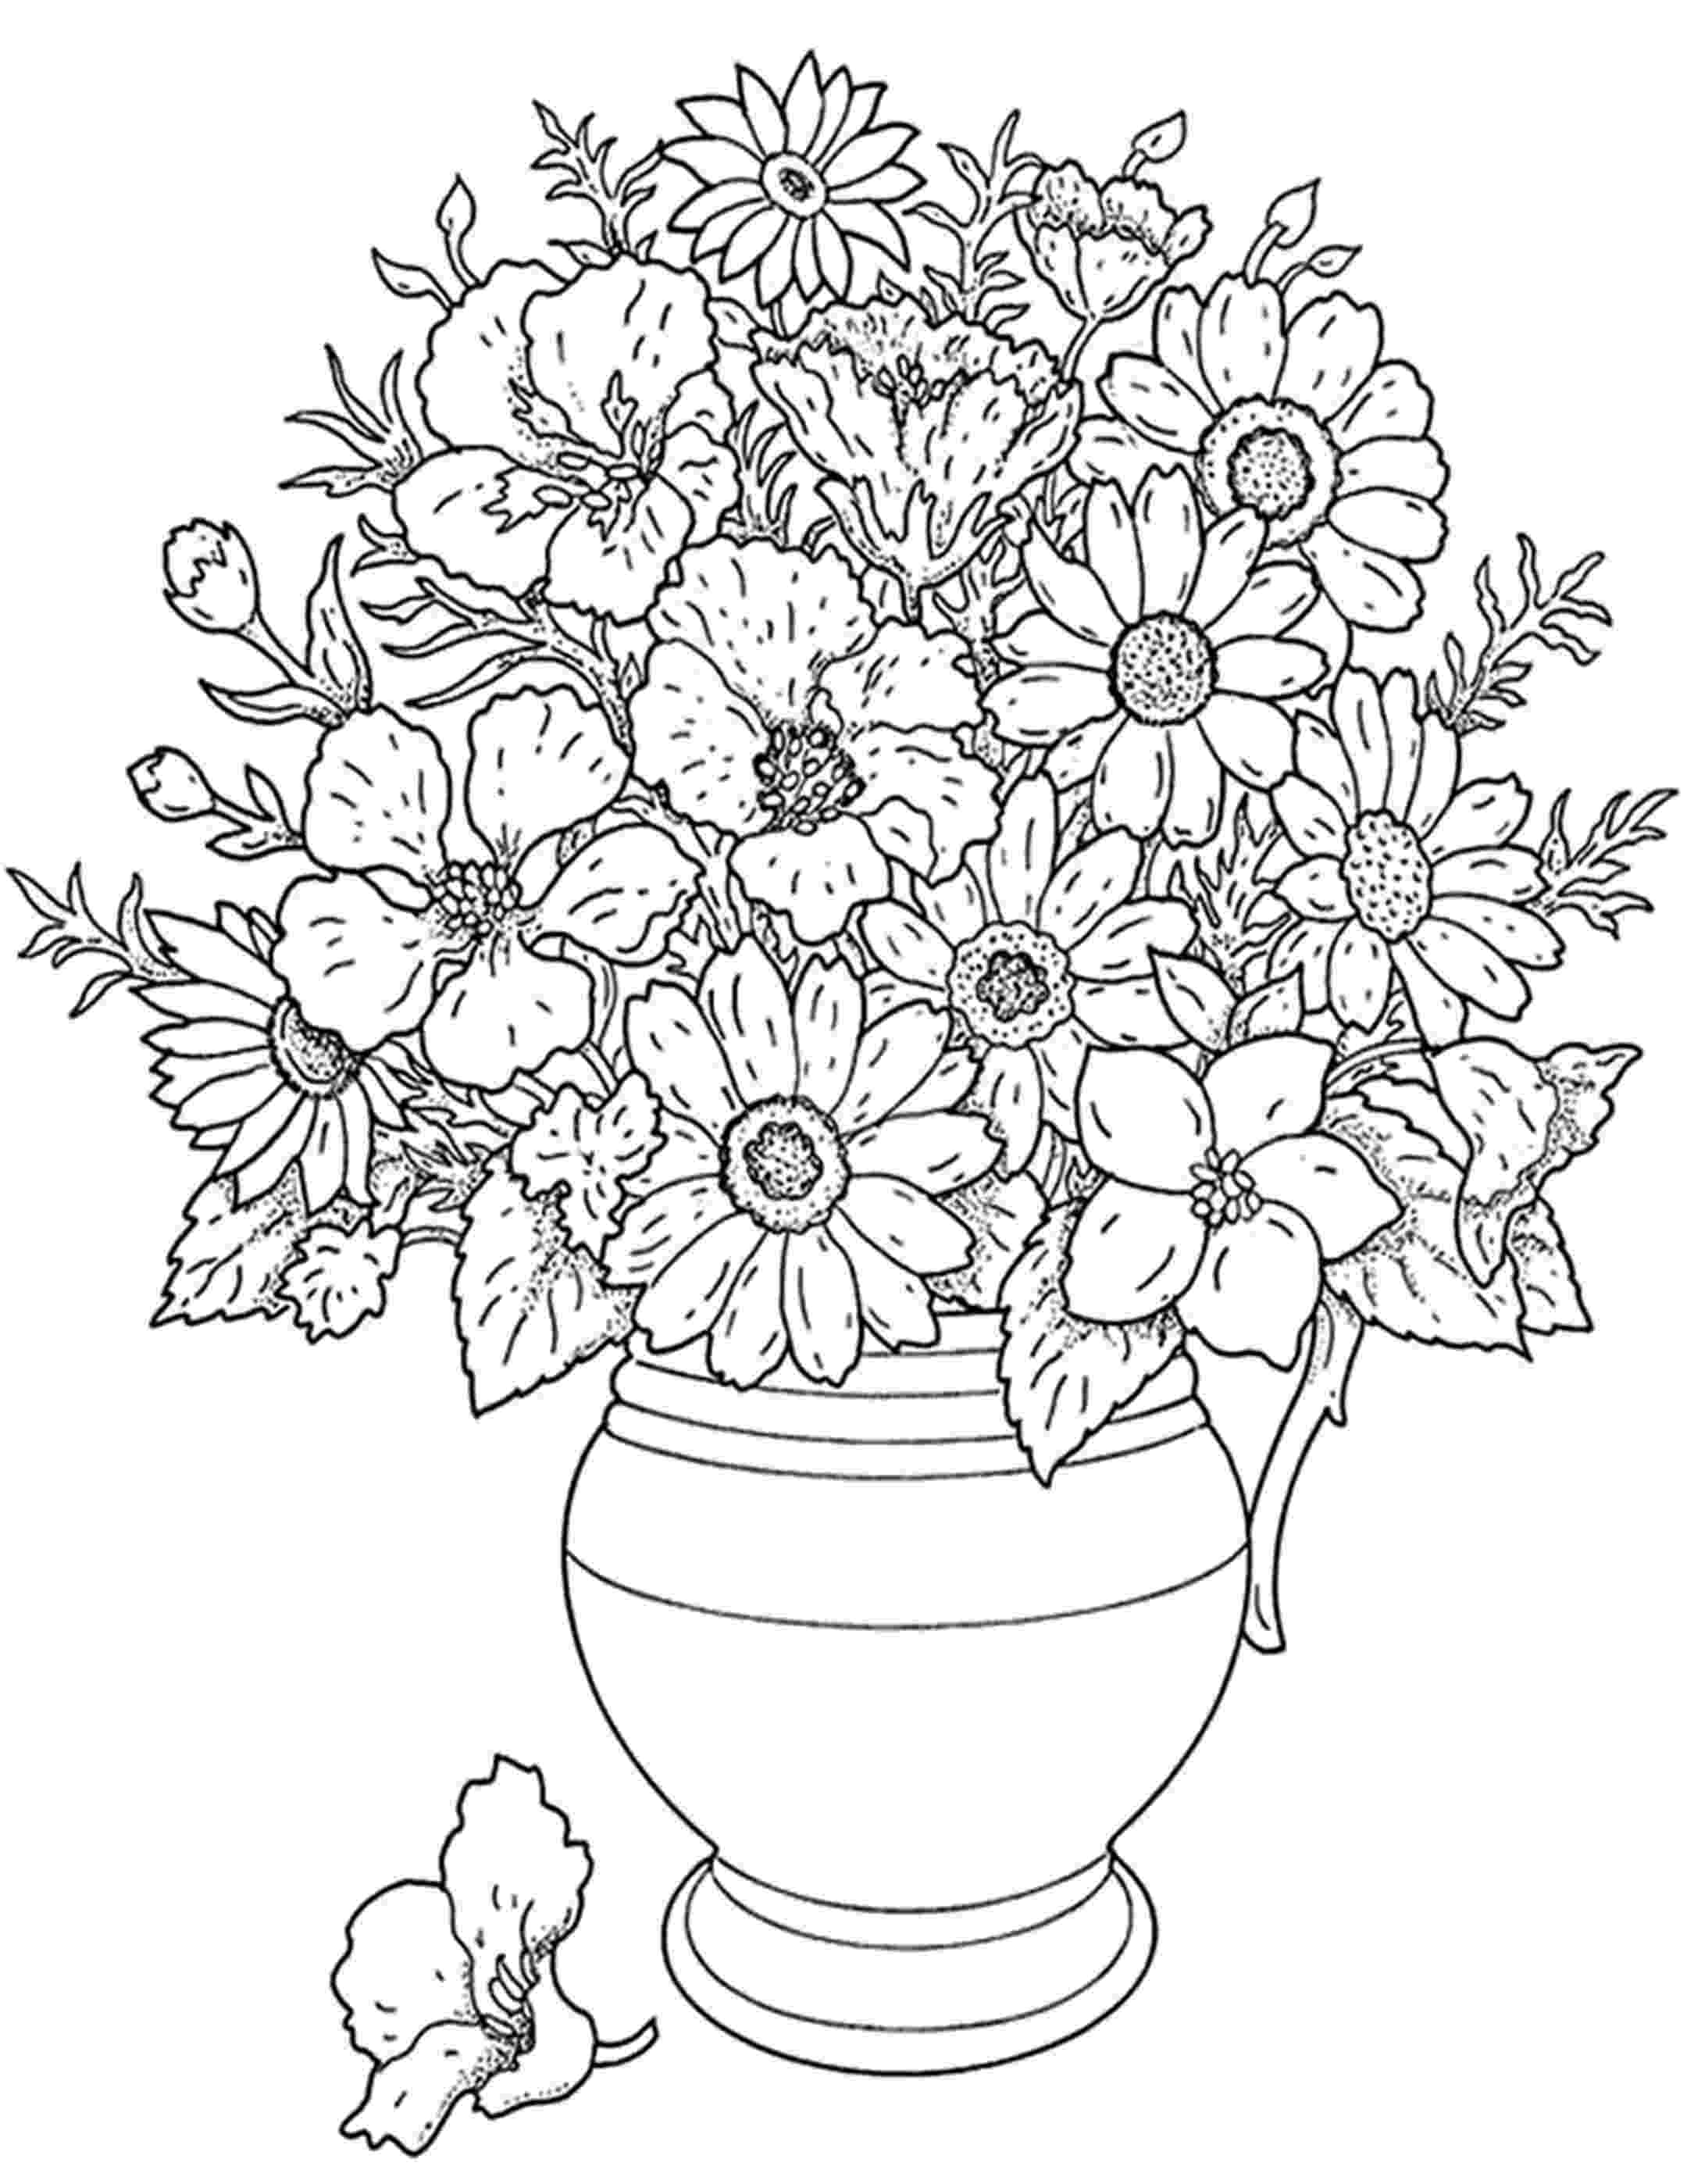 flowers to color print free printable flower coloring pages for kids best flowers to print color 1 2